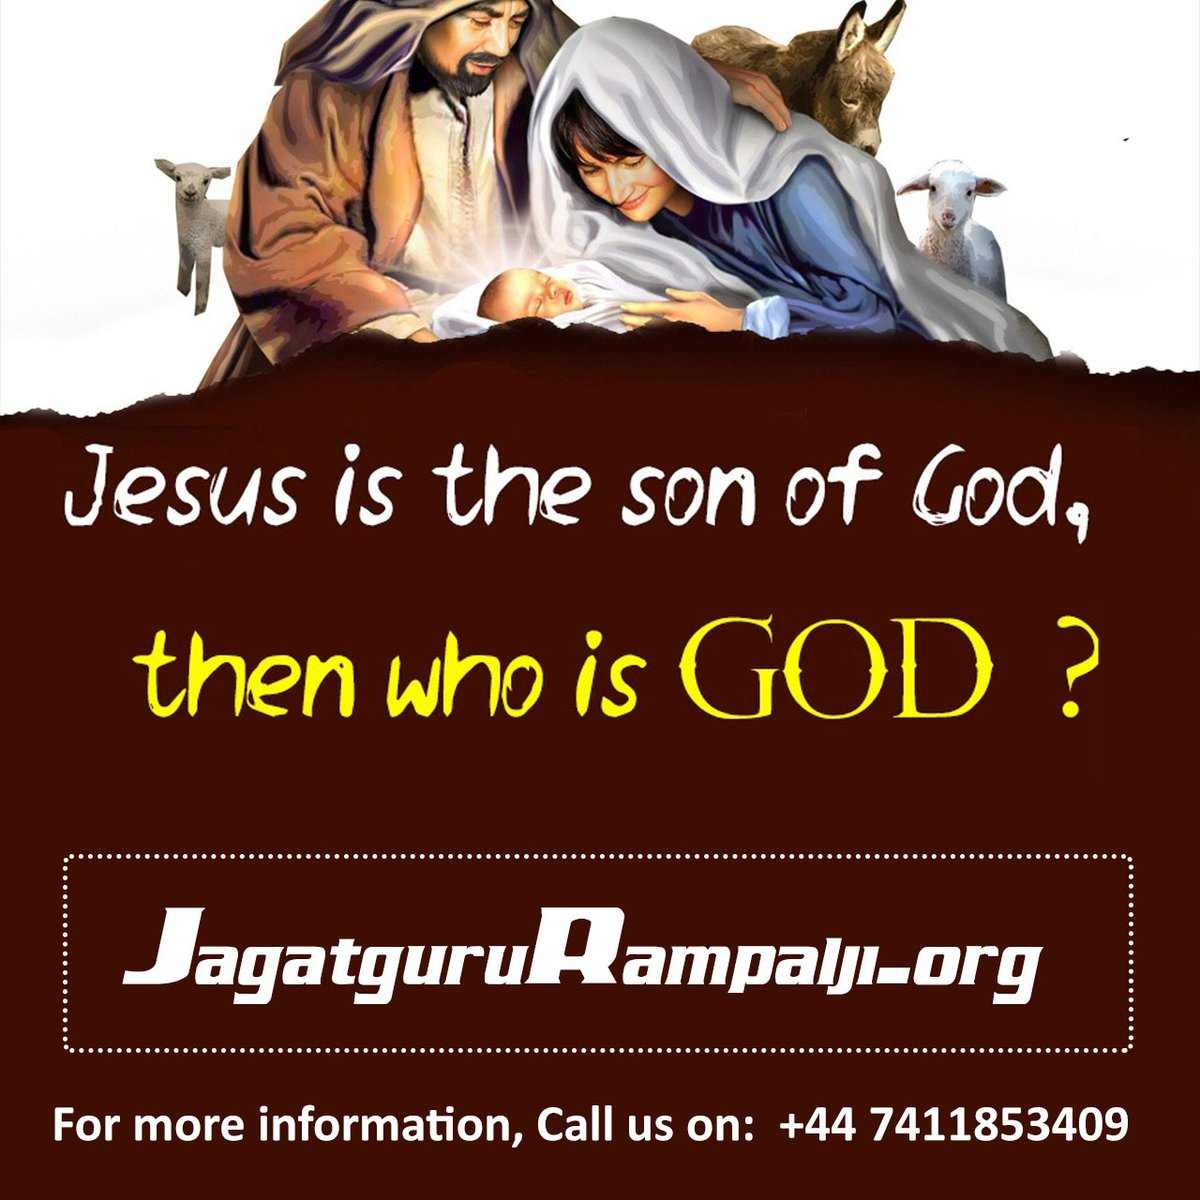 #TuesdayThoughts  Holy Bible Genesis 18:2 Abraham looked up and saw three men standing nearby.  This proves God in bible is not the Supreme God. <br>http://pic.twitter.com/iV8fzqt44l